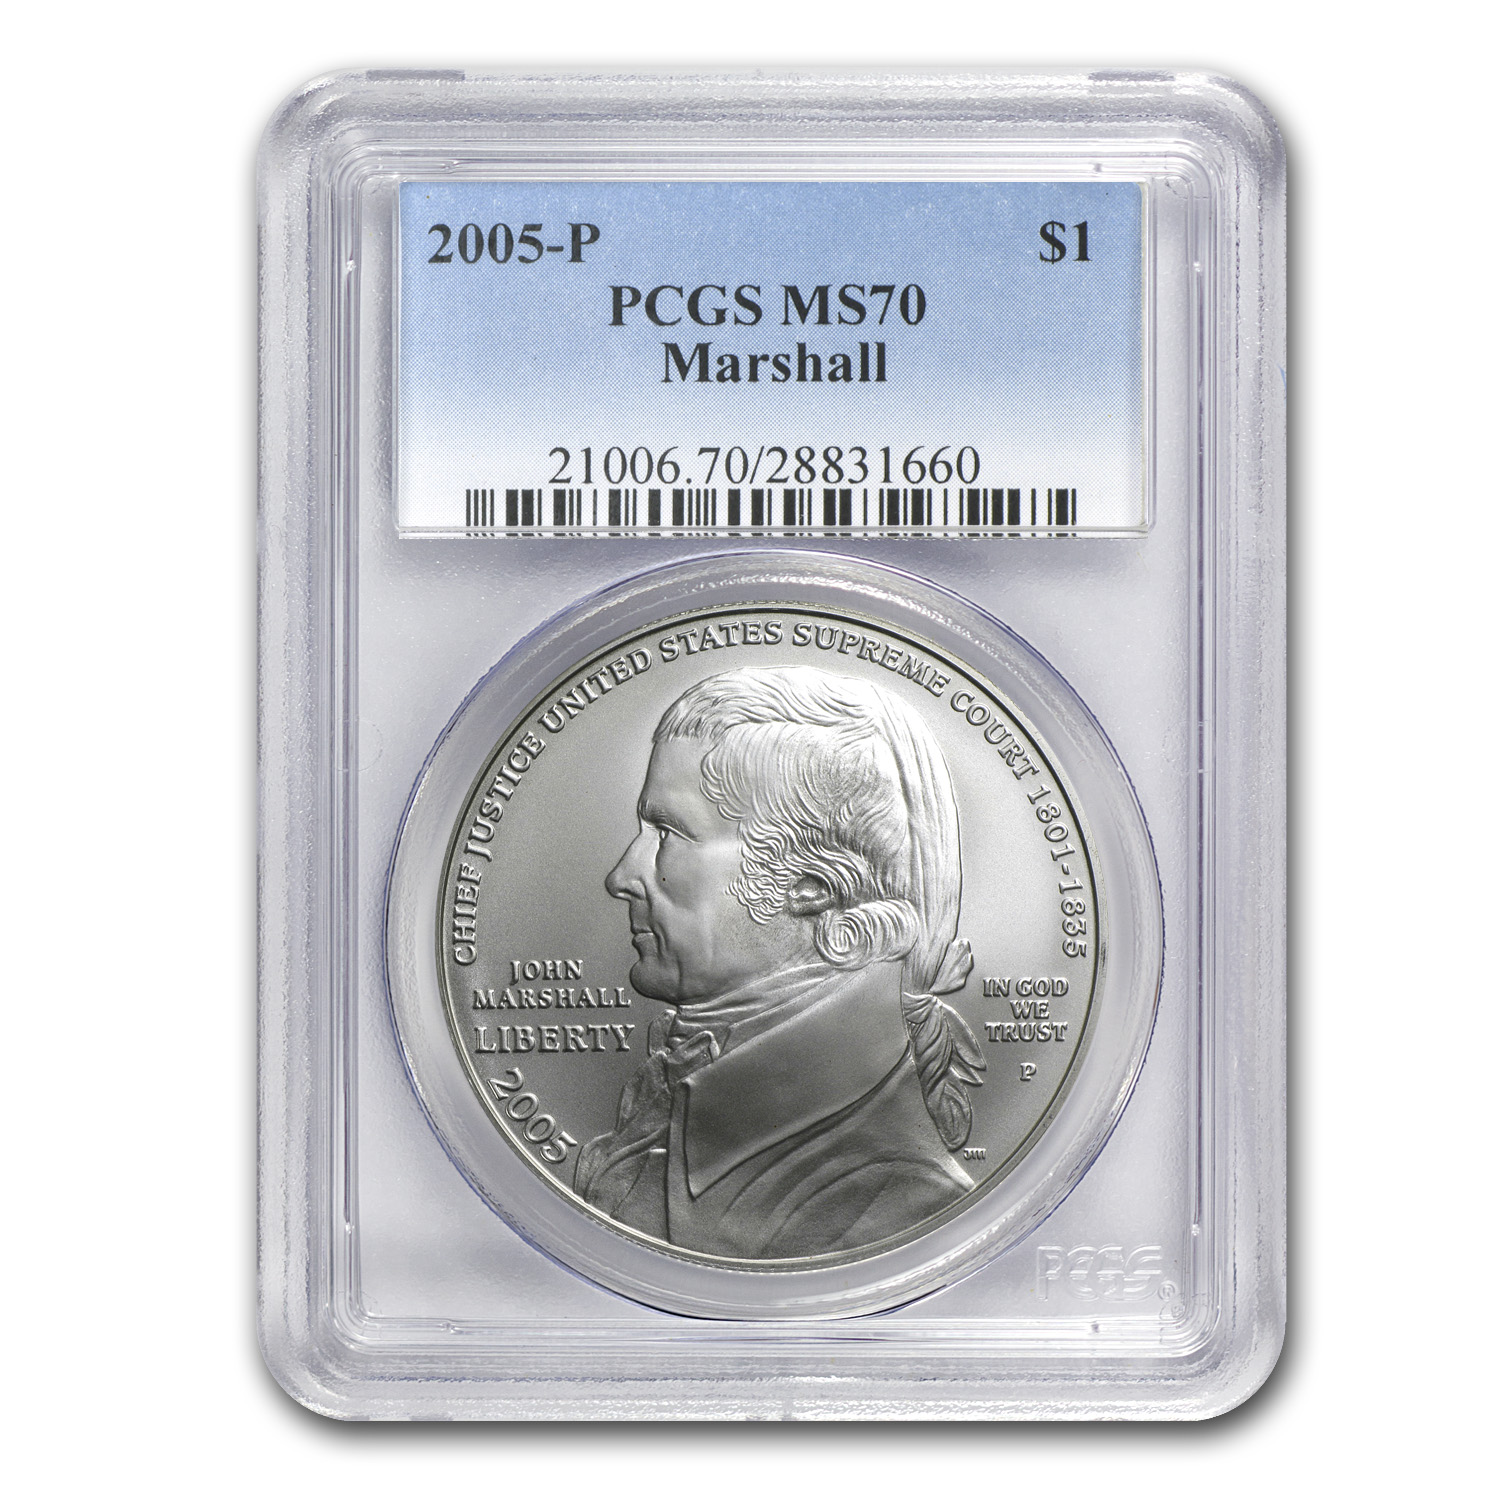 2005-P Chief Justice Marshall $1 Silver Commem MS-70 PCGS